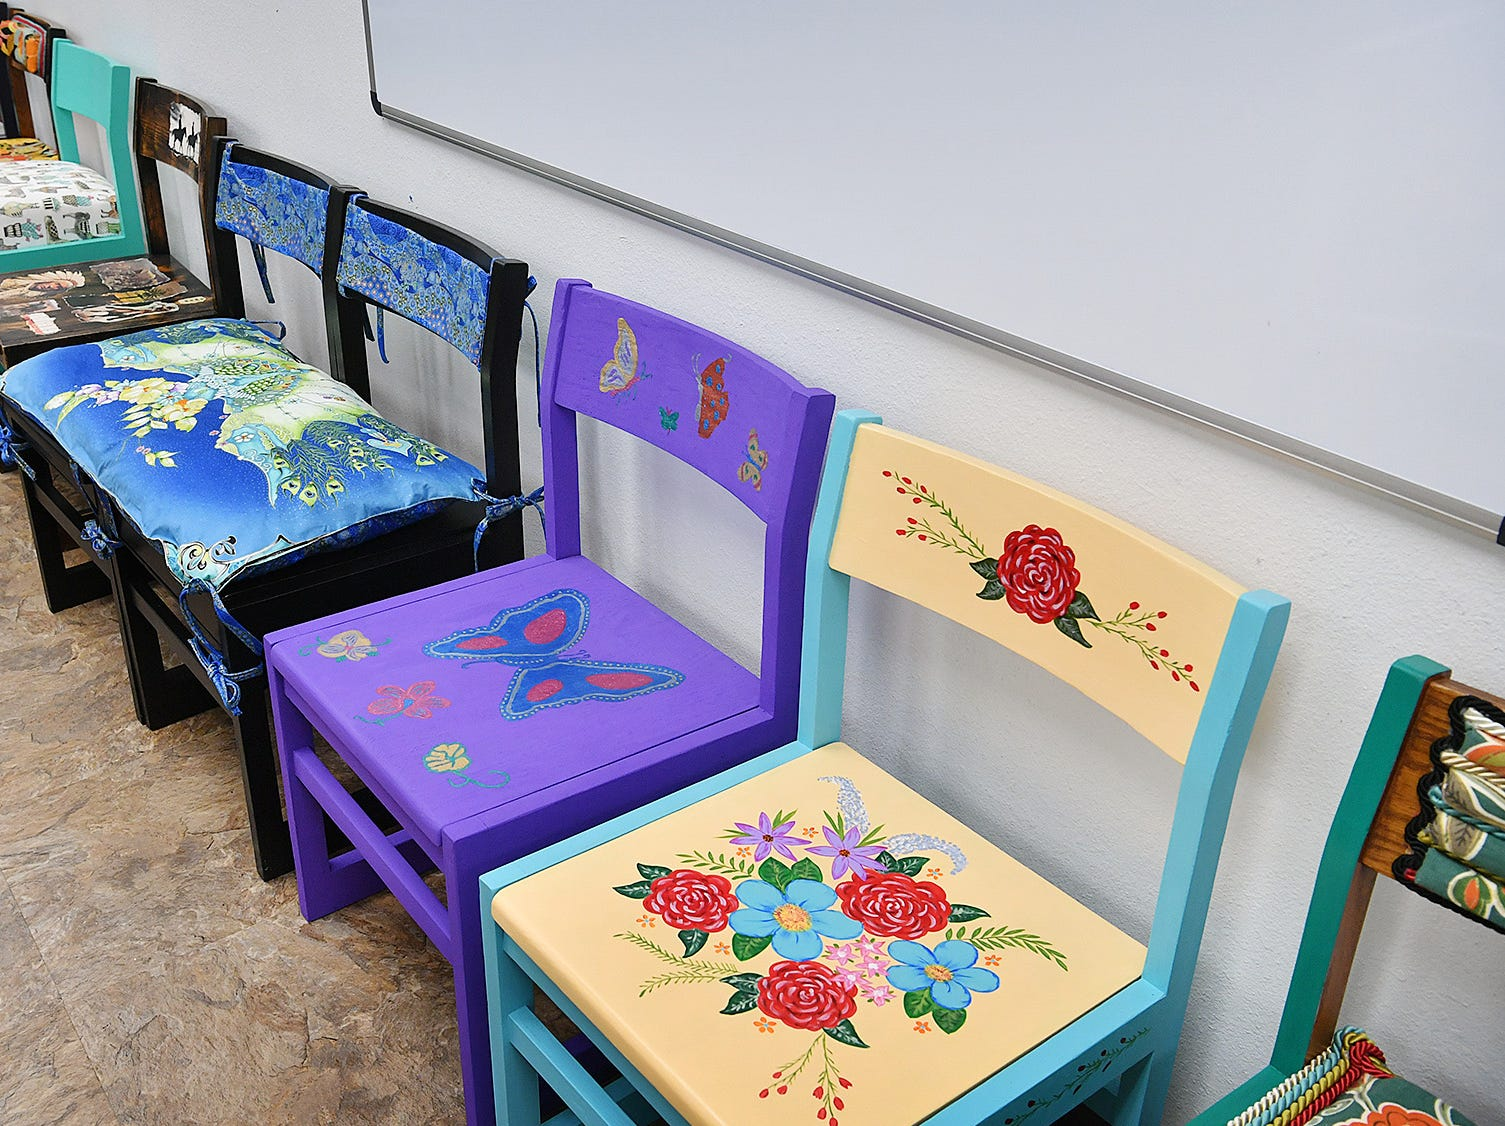 A wide variety of artistic styles are represented in the approximately 40 chairs in the Wichhita Falls Public Library Chair-ity Art Auction.